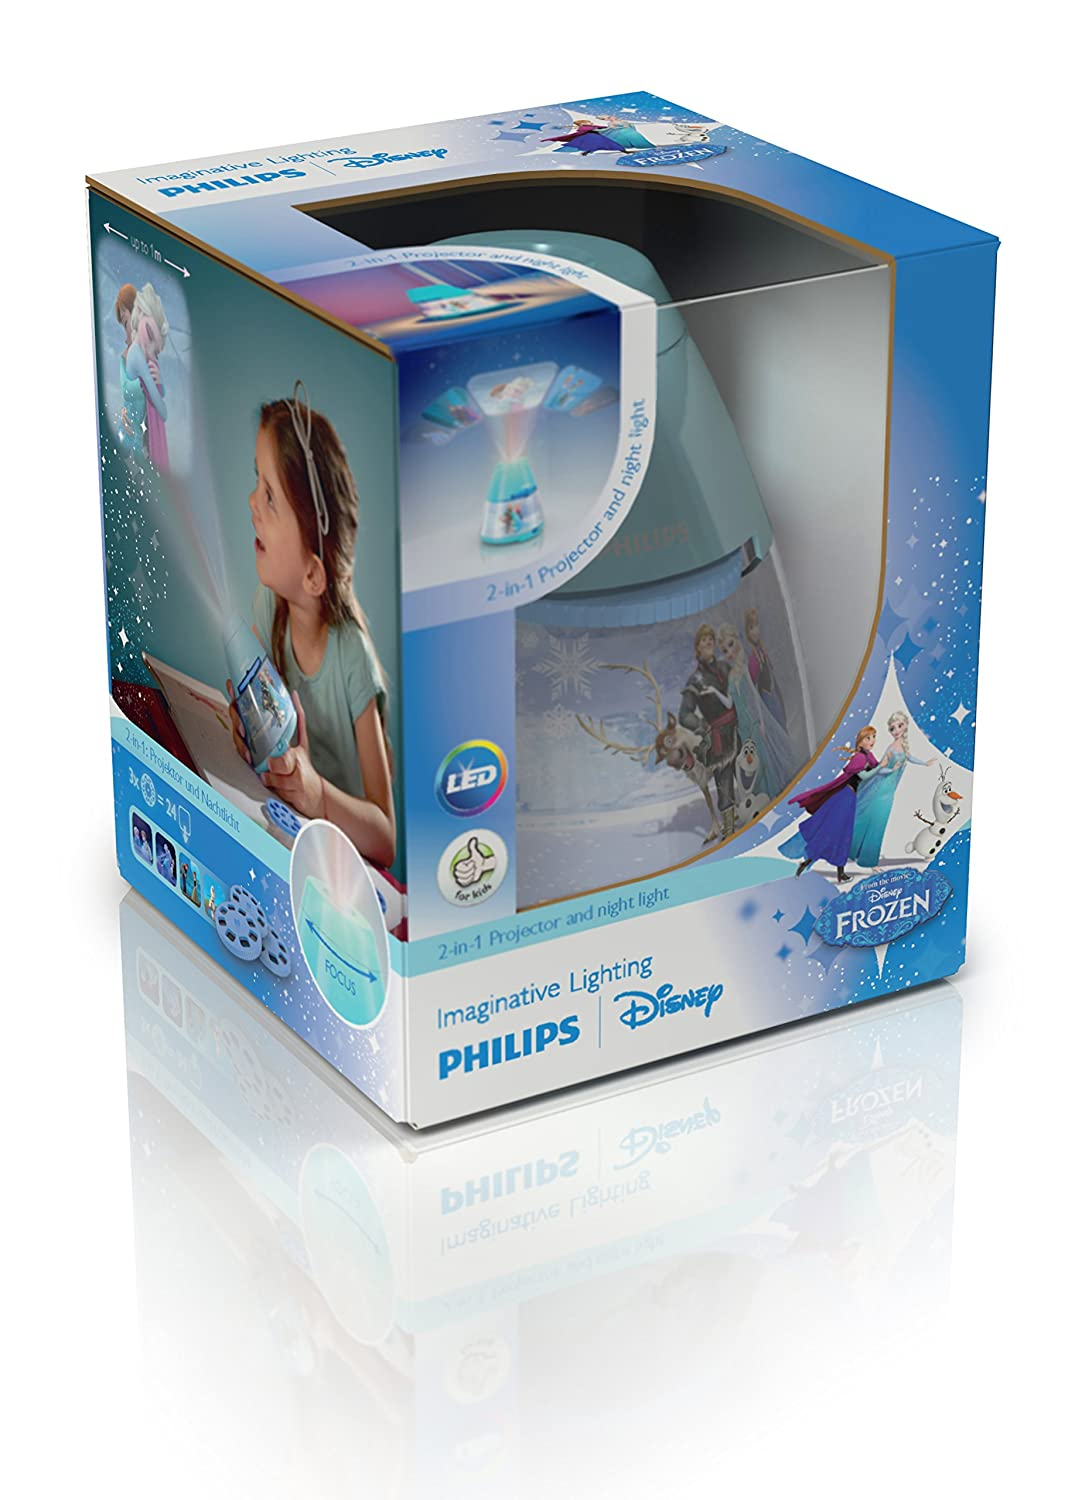 Philips Lighting 71769/08/16 Proyector y luz nocturna 2 en 1, 0.06 ...